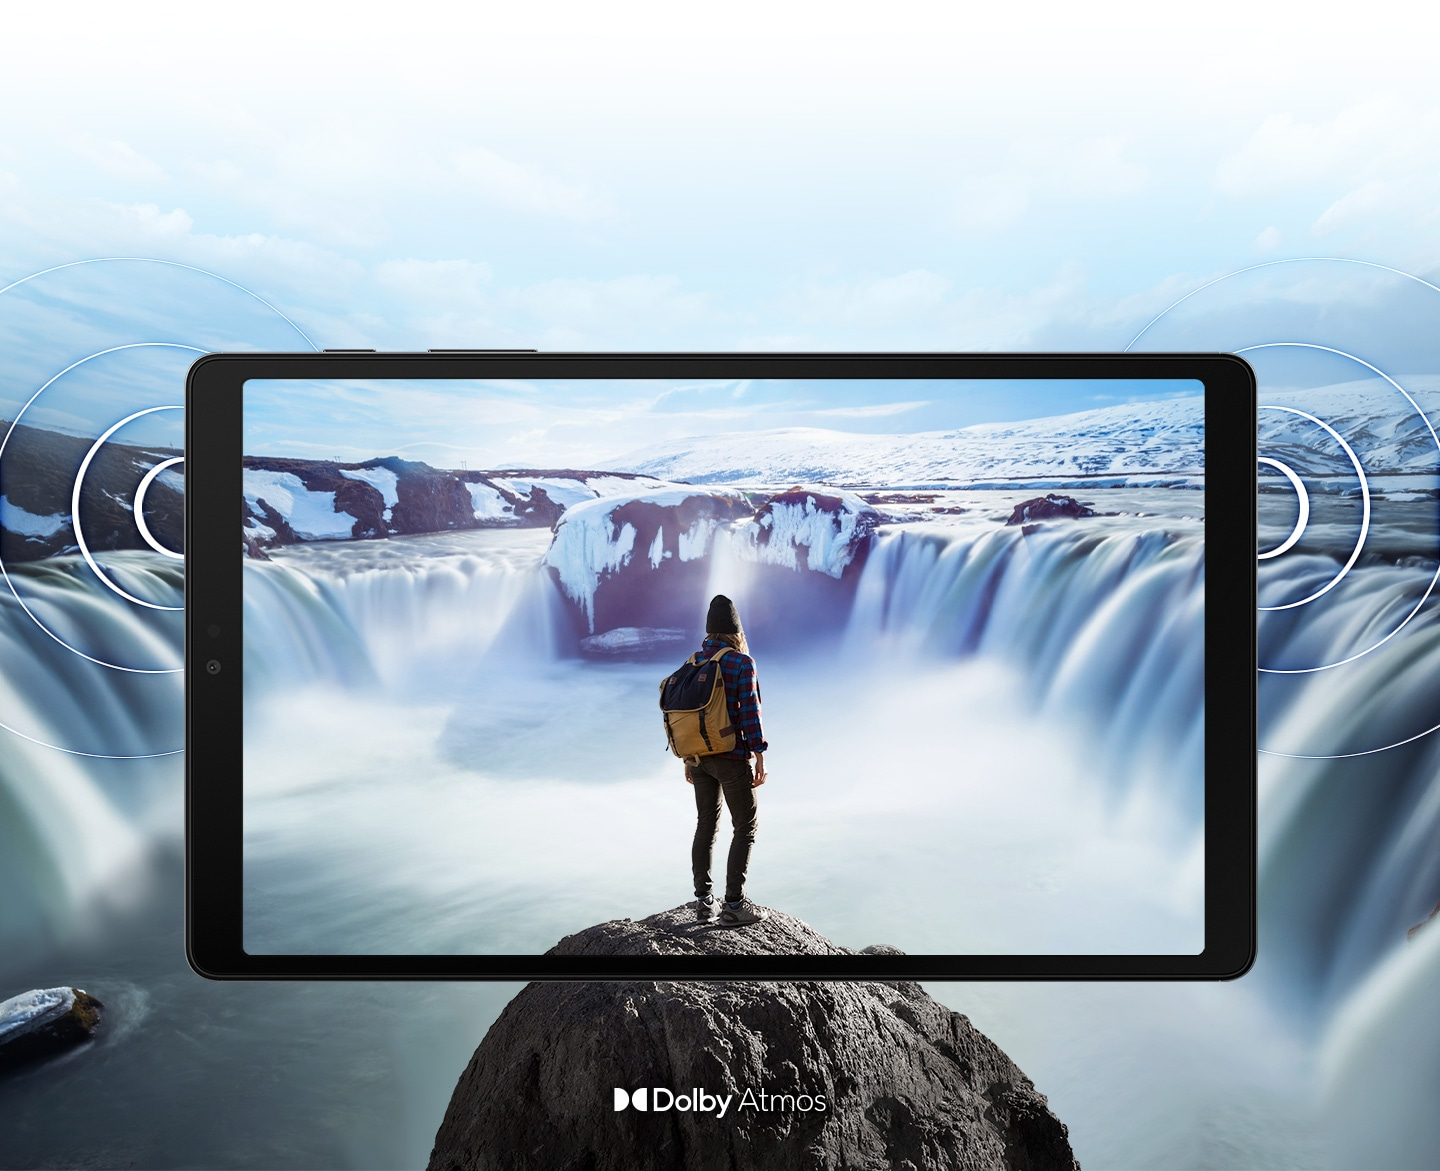 'Galaxy A7 Lite seen from the front with an image of a person standing on a rock in front of steaming waterfalls on either side onscreen. The image expands past the edges of the tablet to show the expansiveness of the display. Rings come out from the sides to demonstrate the location of the dual speakers and the immersive sound of Dolby Atmos.